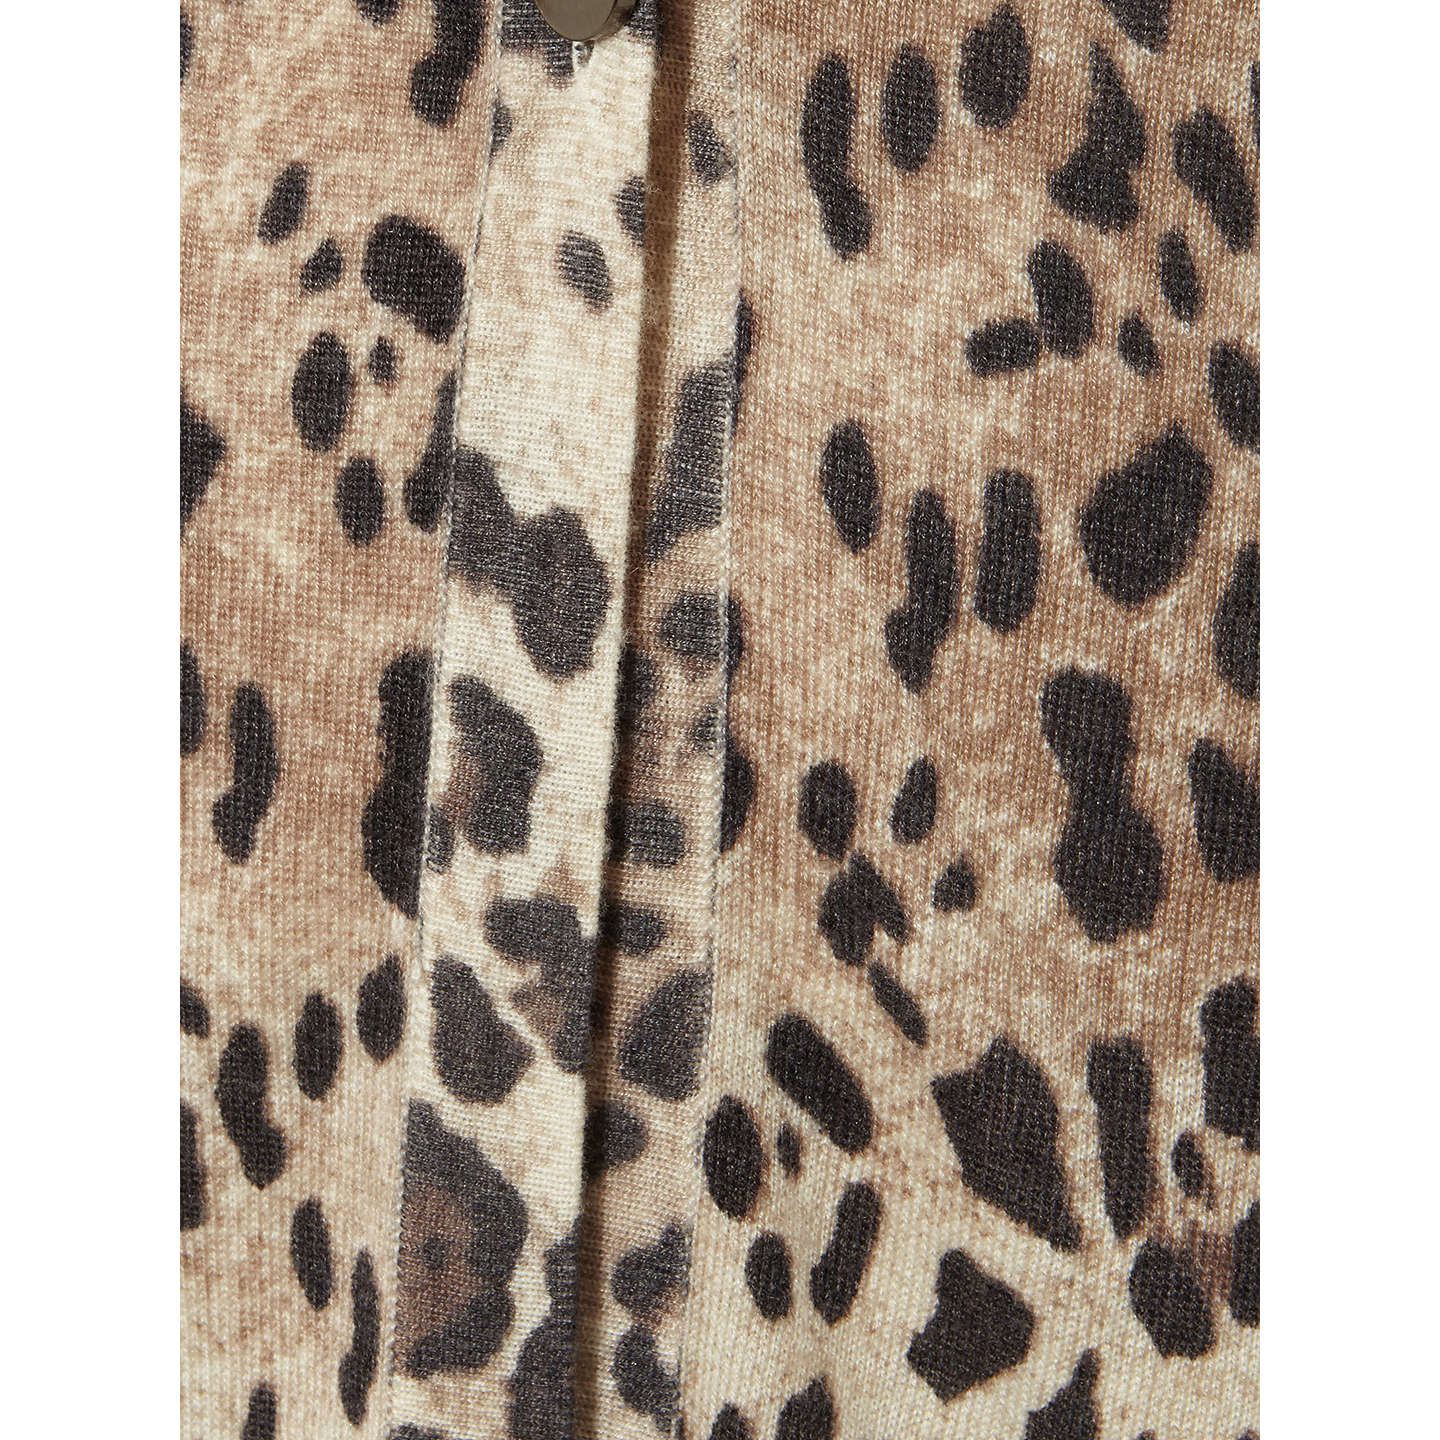 BuyDamsel in a dress Leopard Print Cardigan, Neutral, 8 Online at johnlewis.com